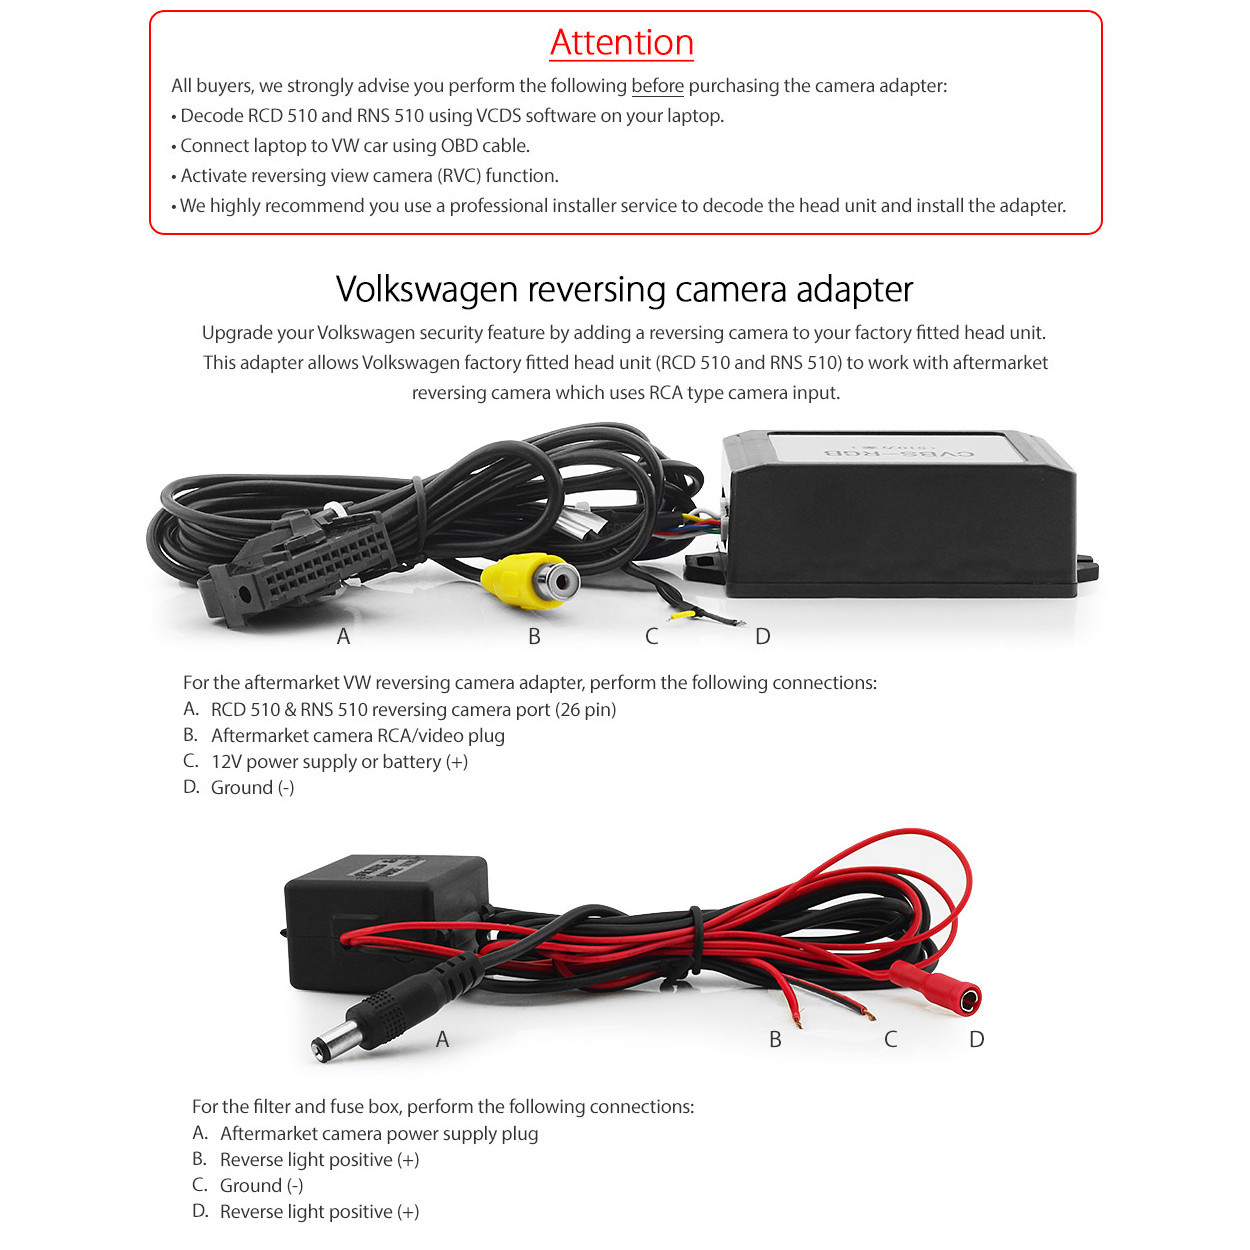 Direct Fit Aftermarket RNS510 Reversing Camera Adaptor For VW